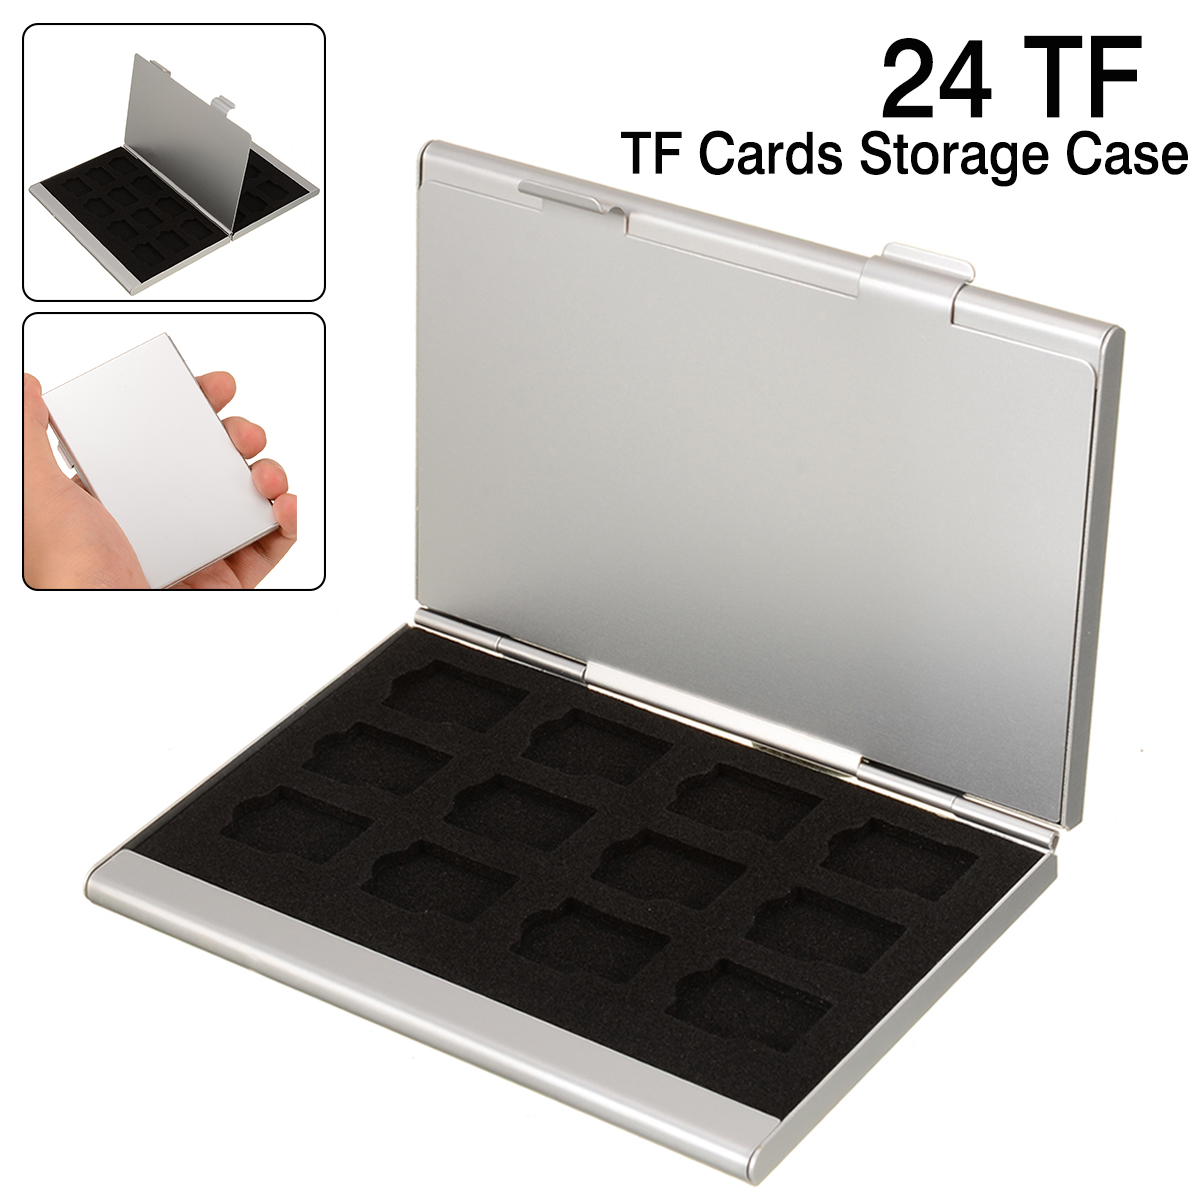 24 IN 1 Portable EVA Spomge Slots TF Cards Storage Case Silver Aluminum Alloy Shell Box For Memory Card Easy Carry Tools